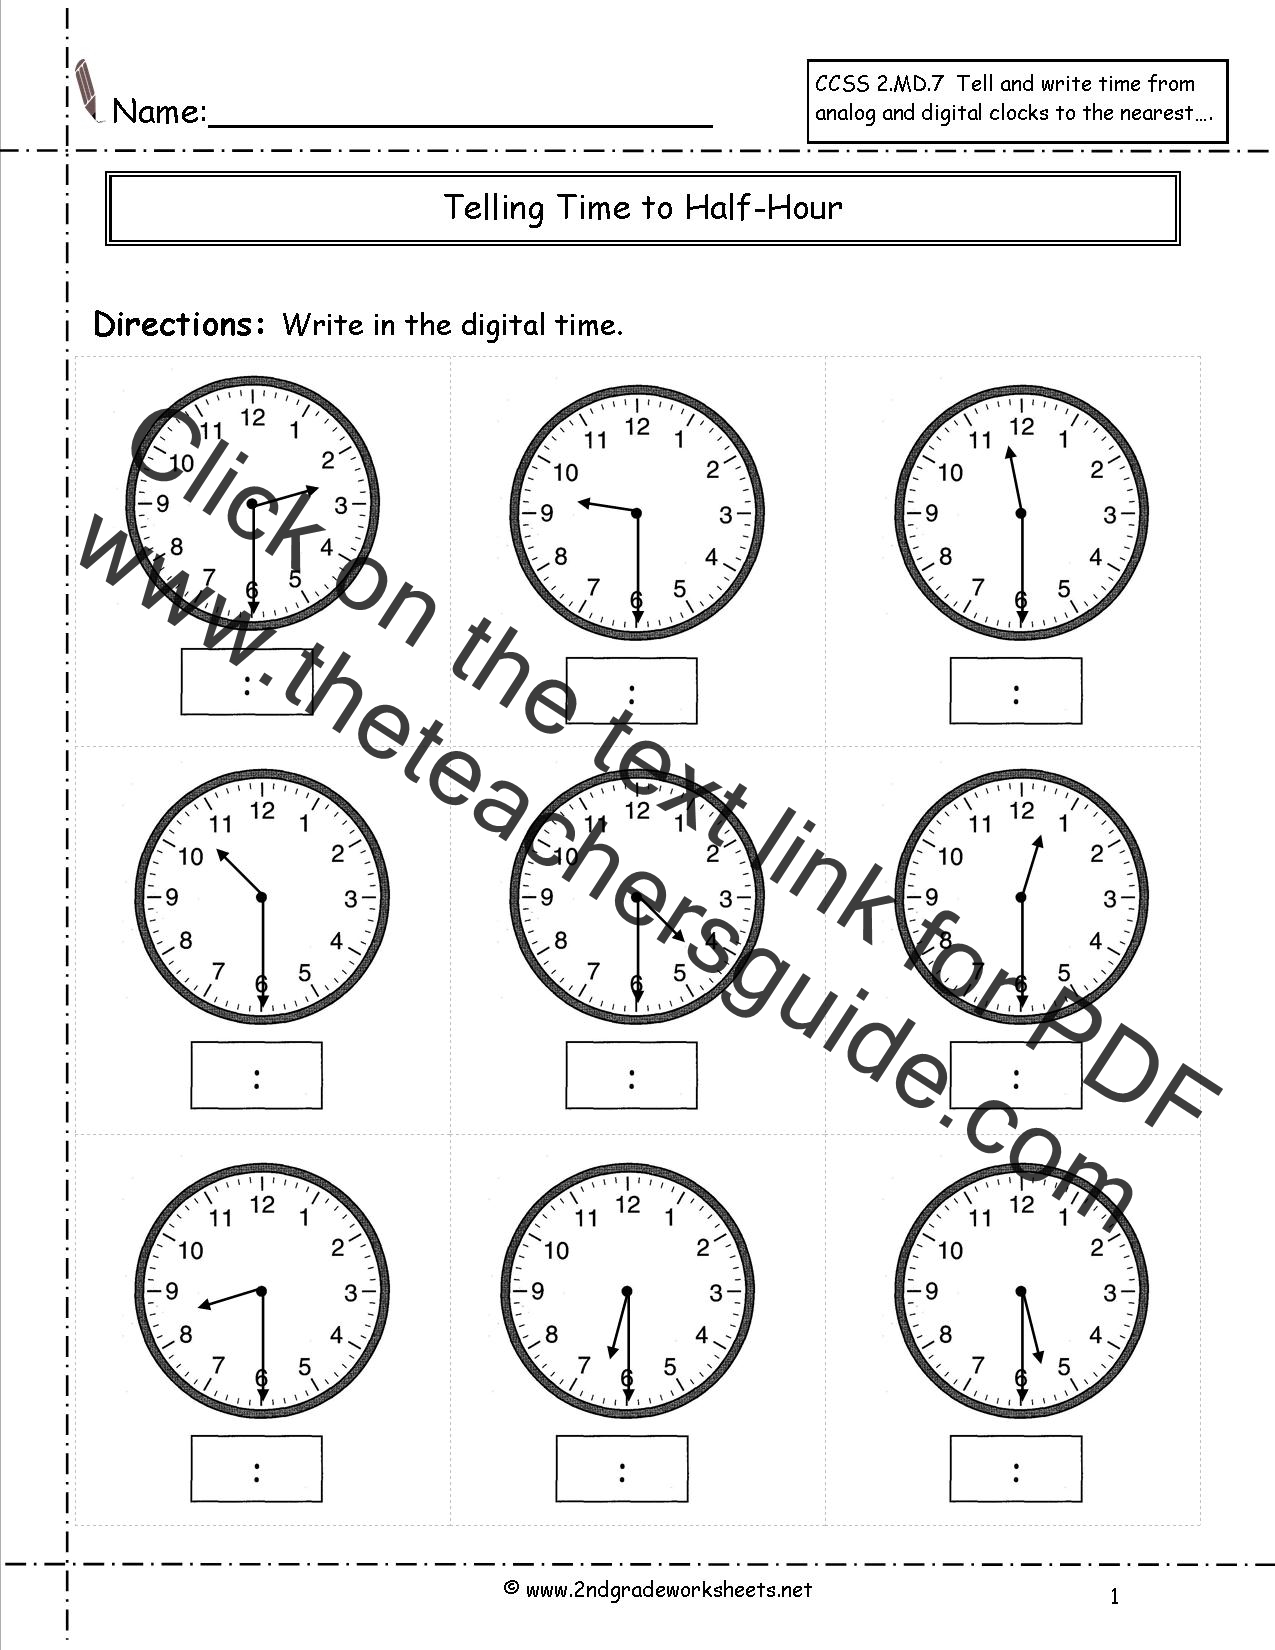 Worksheets Time To The Half Hour Worksheets ccss 2 md 7 worksheets telling time to five minutes nearest half hour worksheet